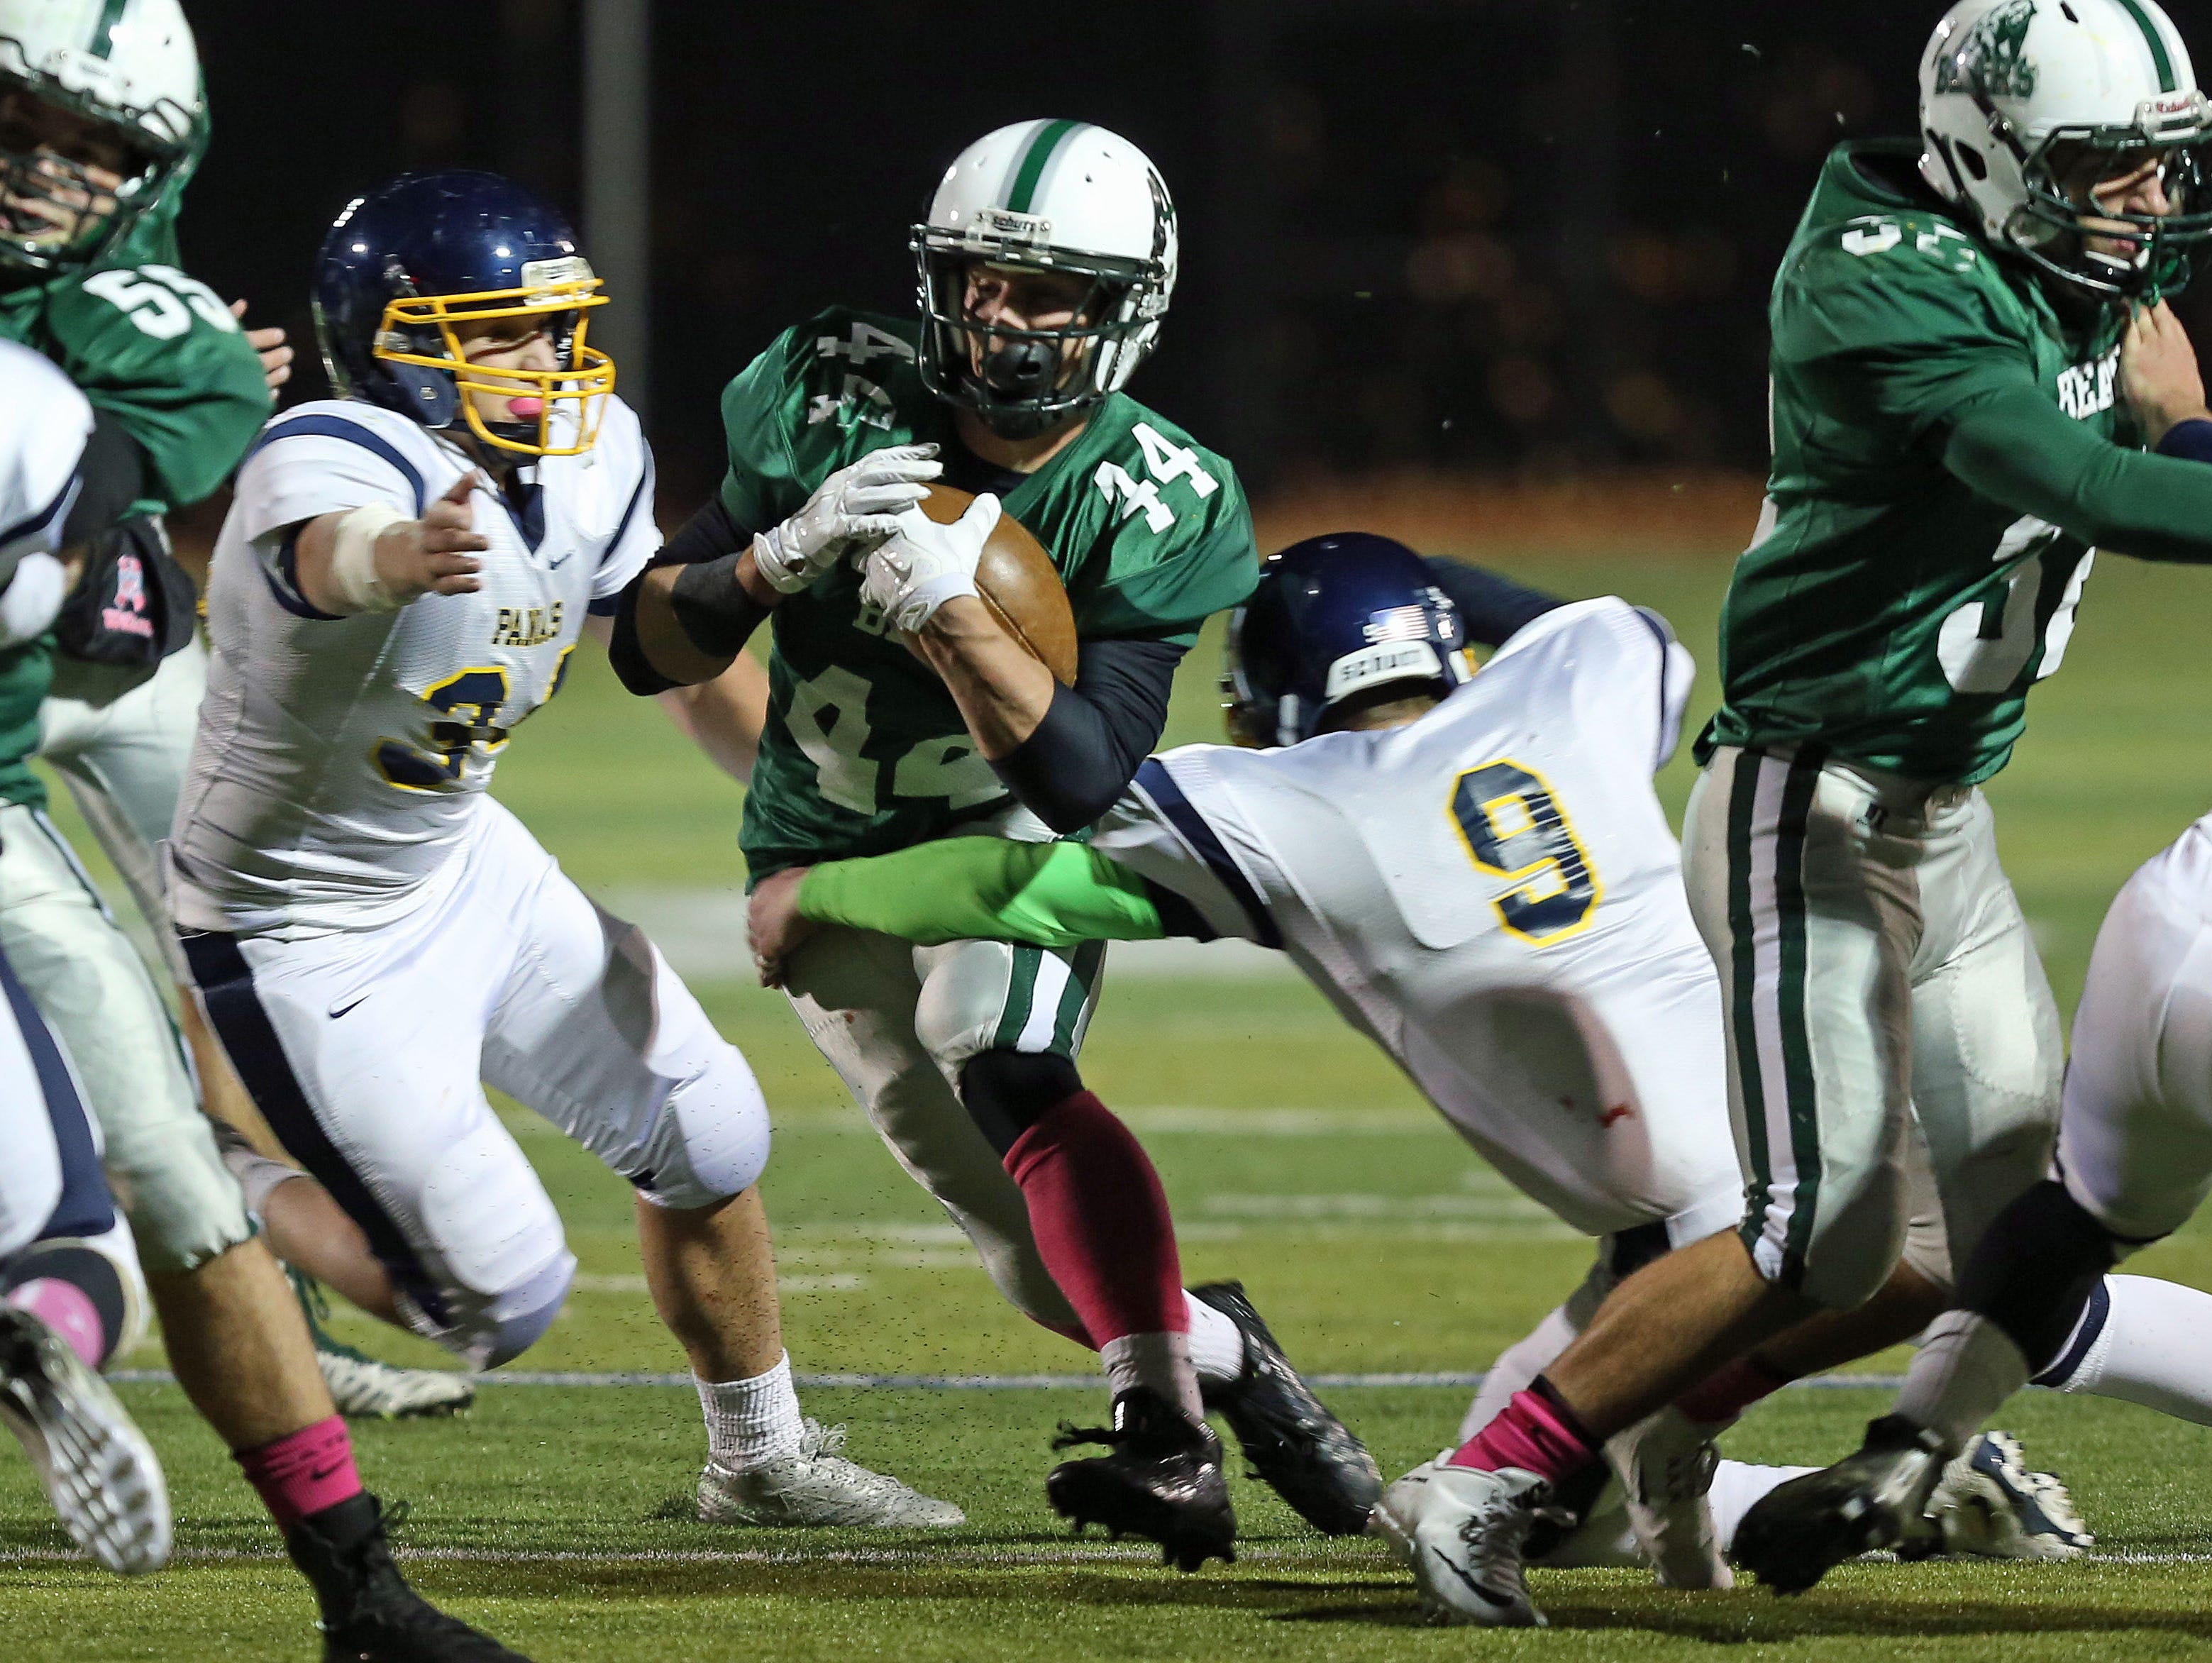 Brewster's Jack Guida (44) looks for some running room in the Panas defense during football action at Brewster High School Oct. 17, 2015.